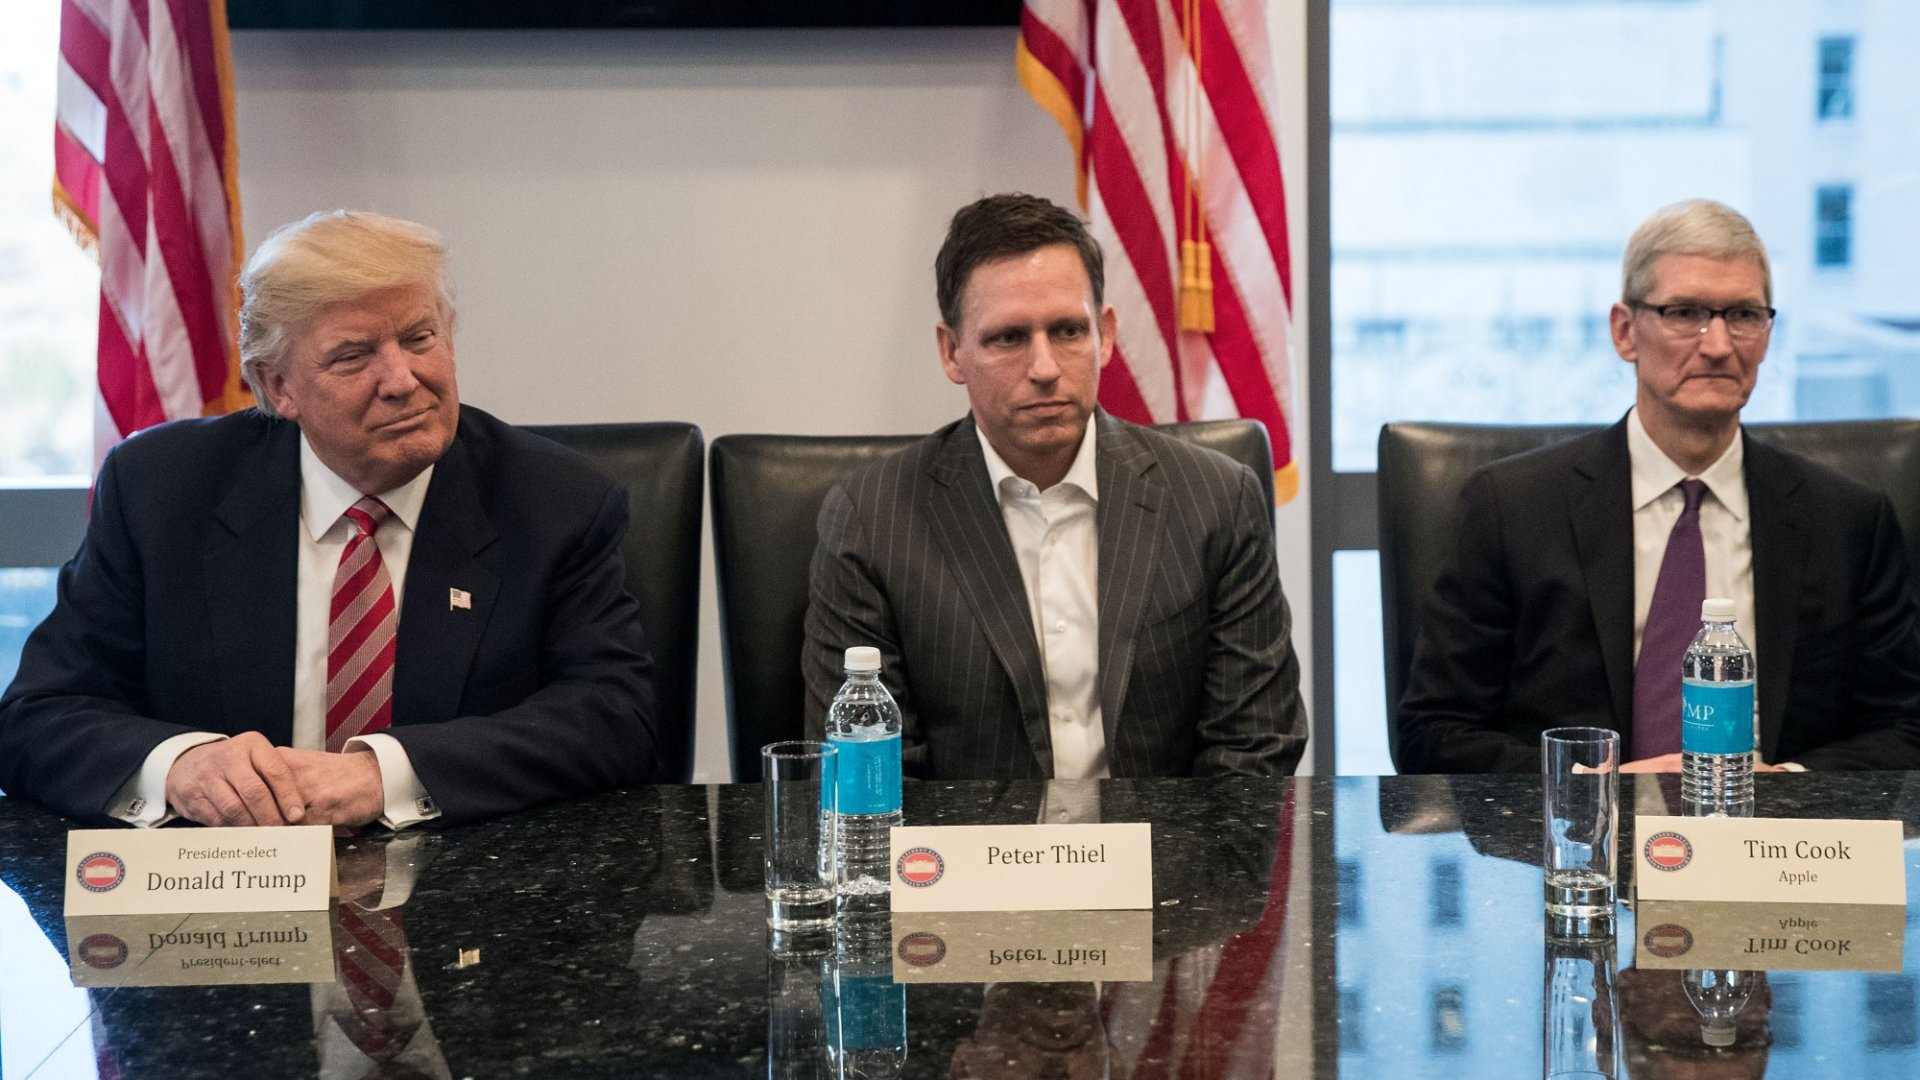 President Donald Trump, Peter Thiel, and Tim Cook.